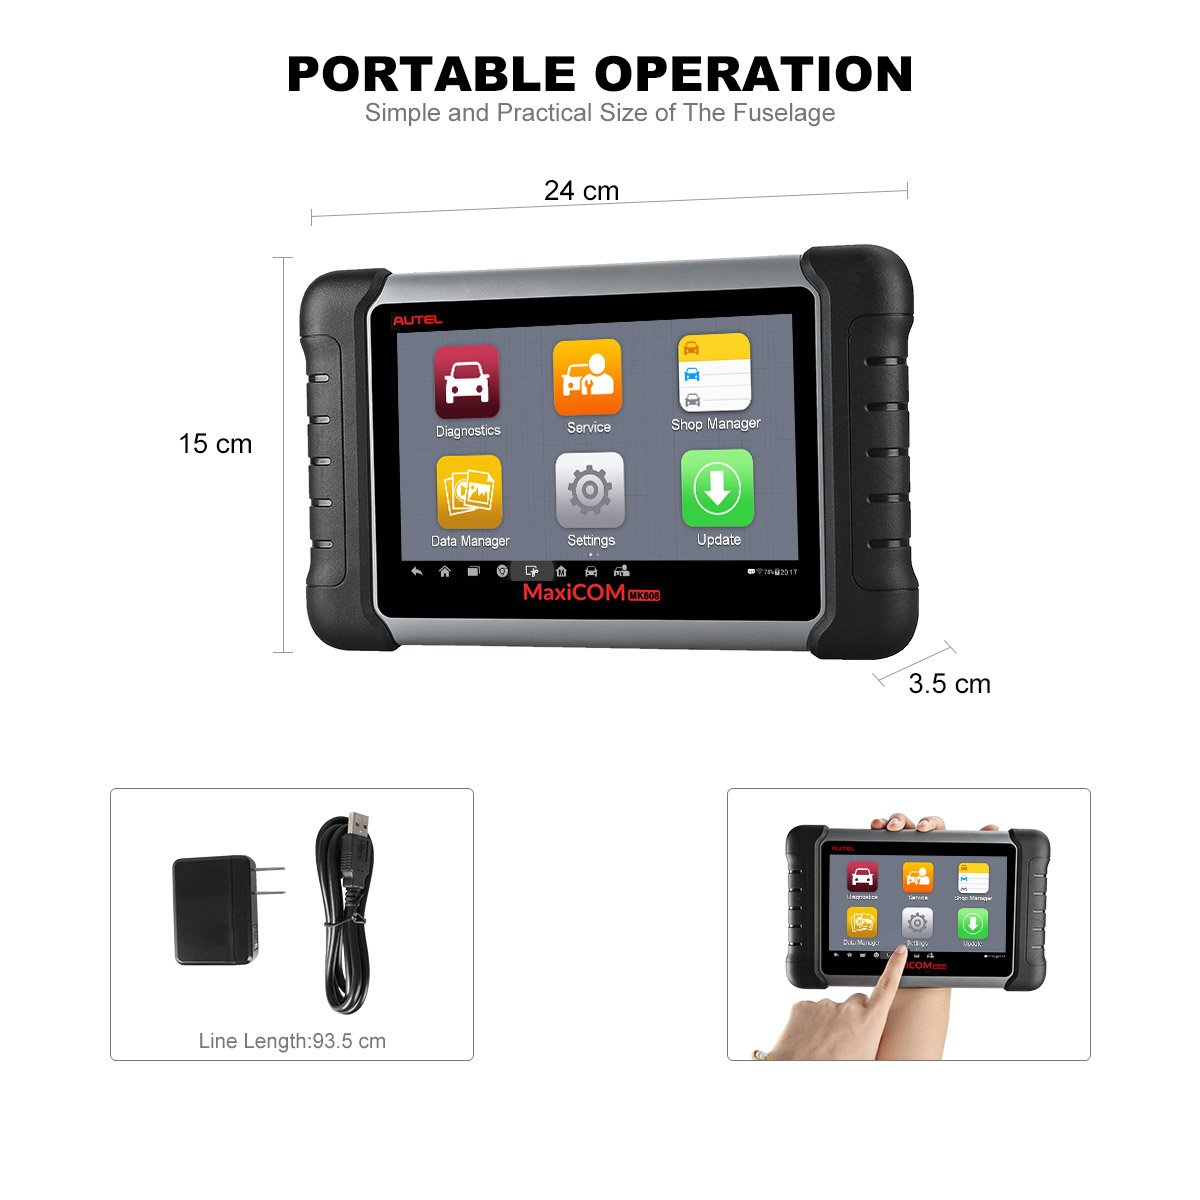 Autel MaxiCOM MK808 is one of the best professional automotive diagnostic scanners on the market that offers portable operation.